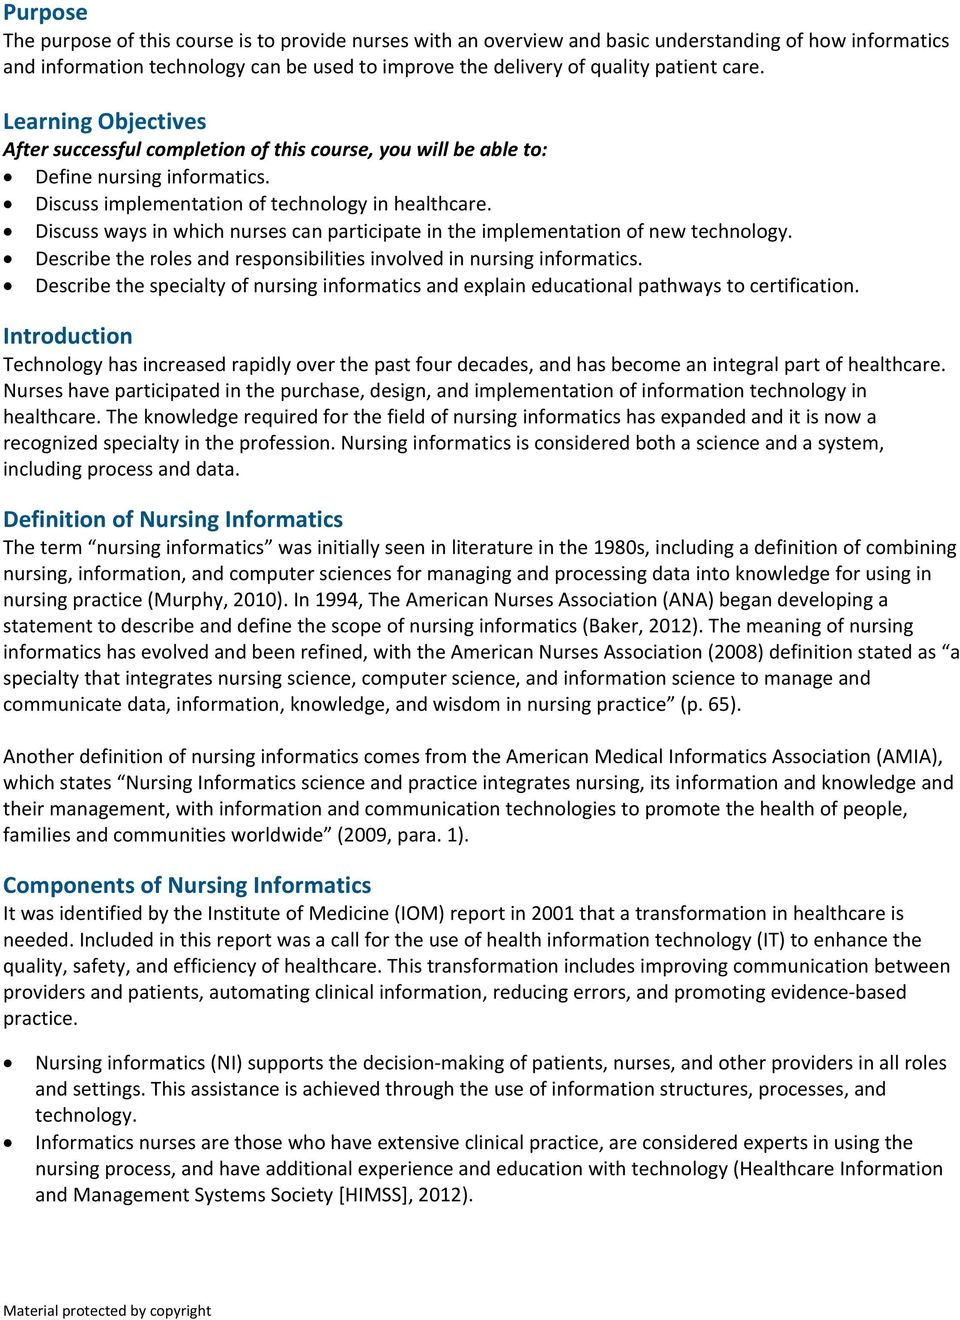 Nursing Informatics The Future Is Here Pdf